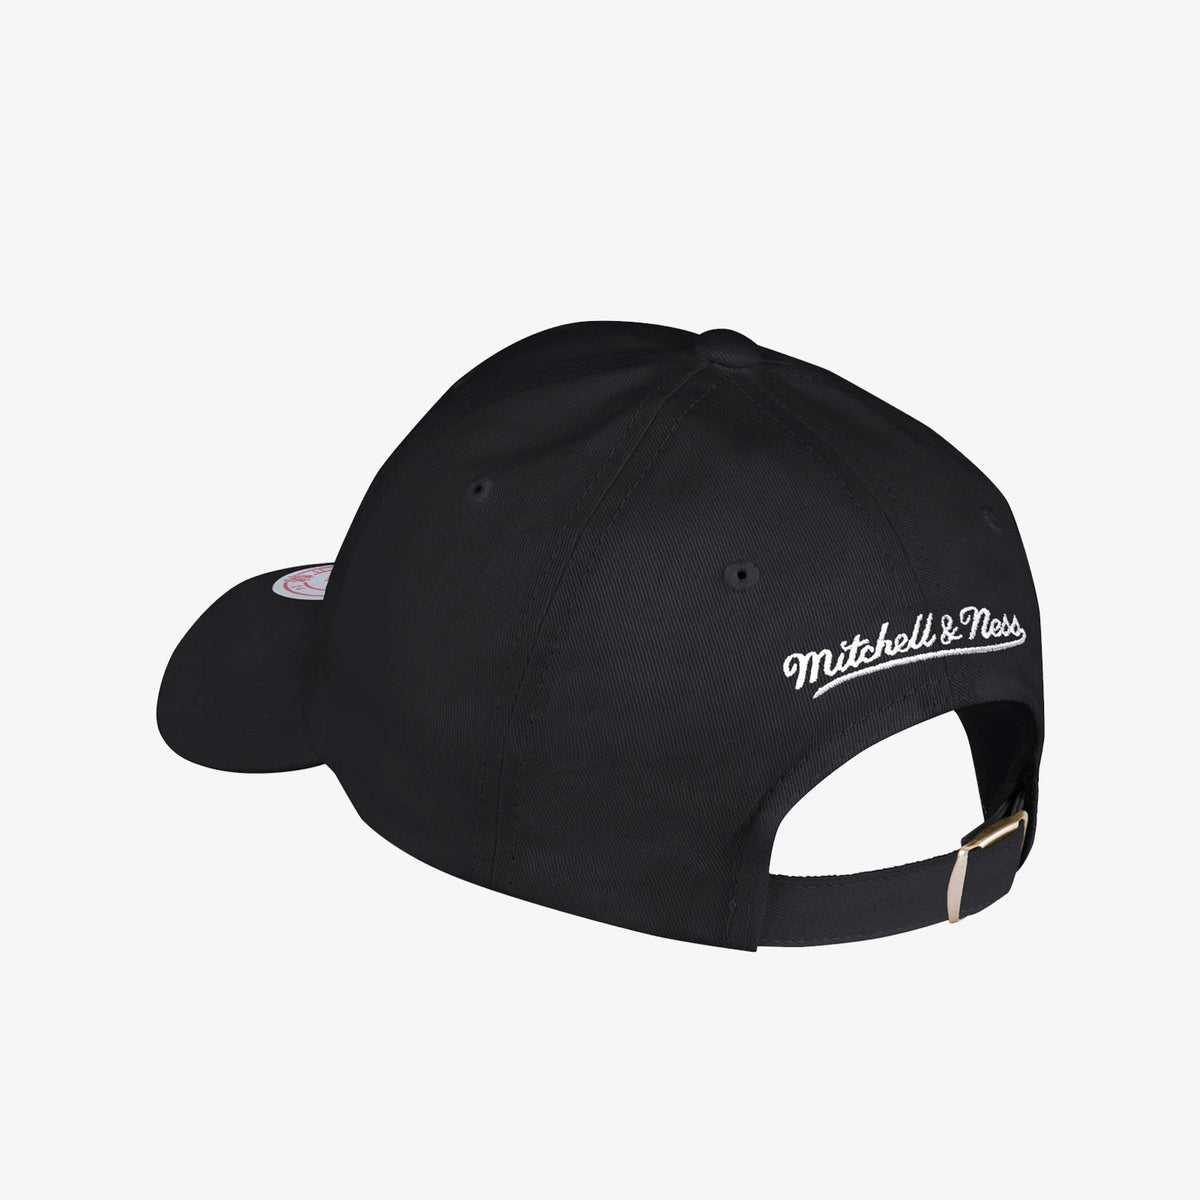 Los Angeles Lakers Box Out Dad Hat - Black